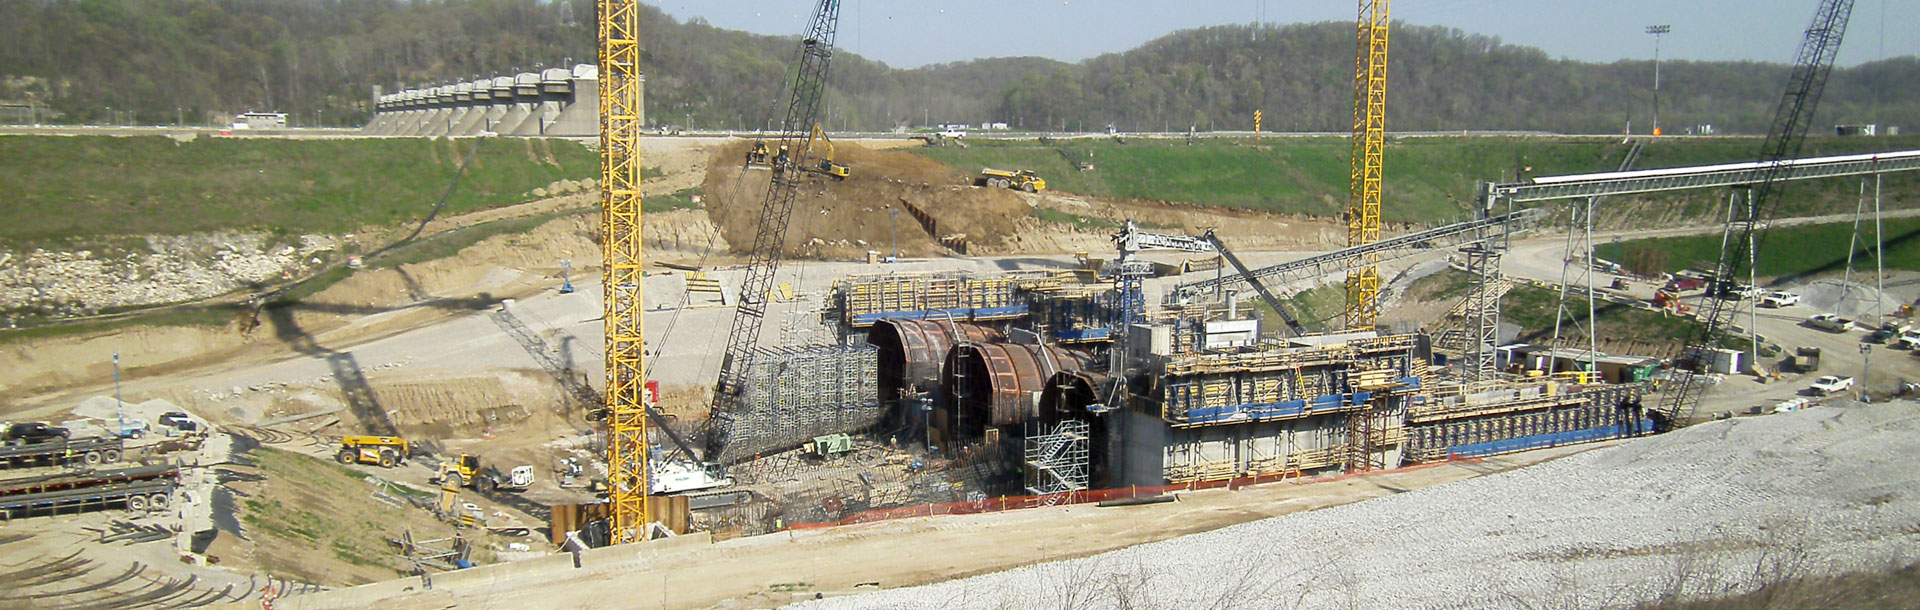 Geotechnology engineers working at Cannelton Hydroelectric project site